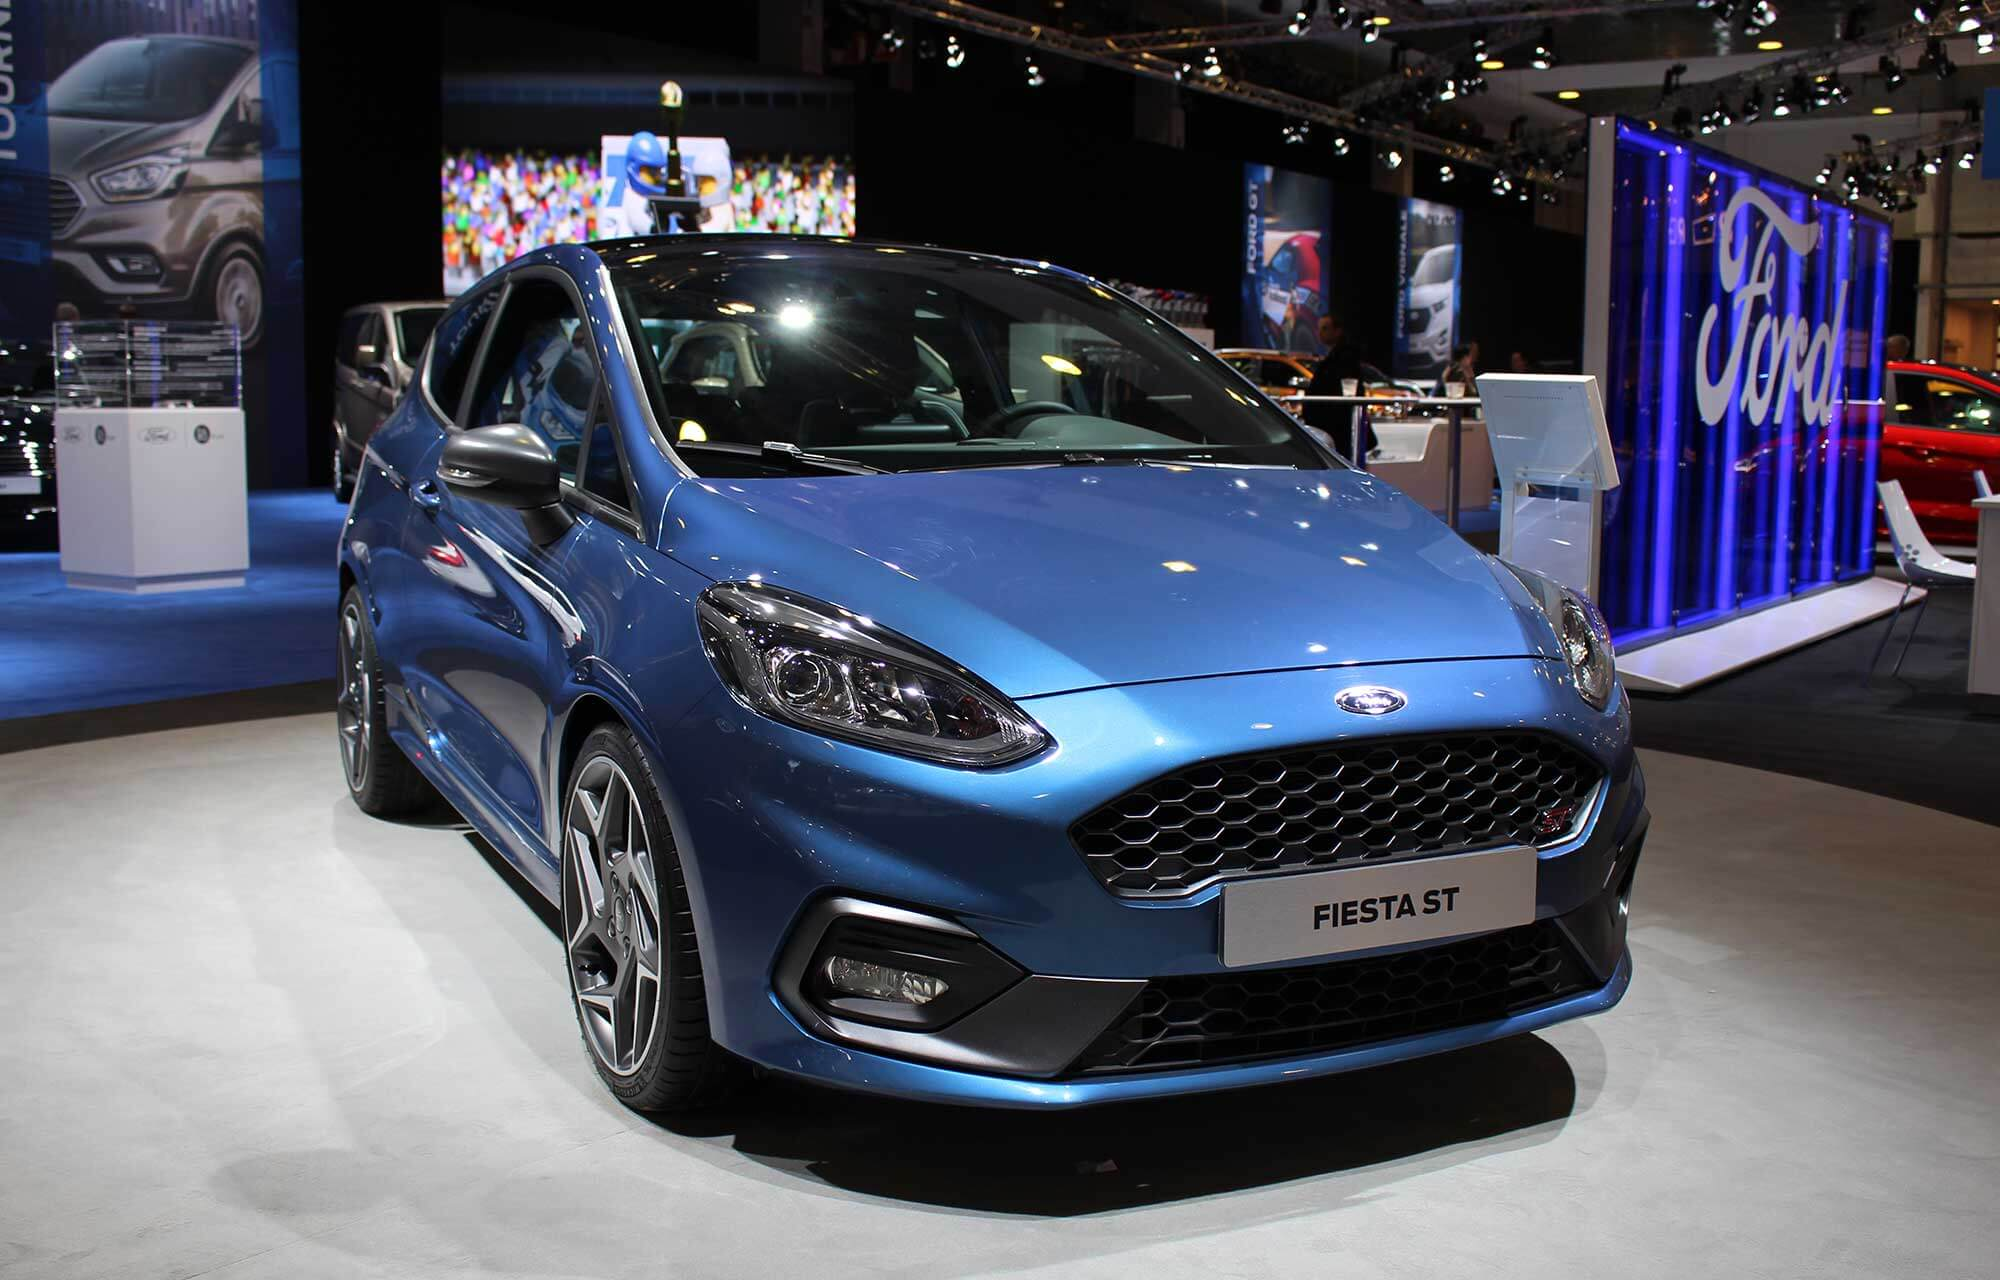 Fiesta ST close-up Autosalon 2018